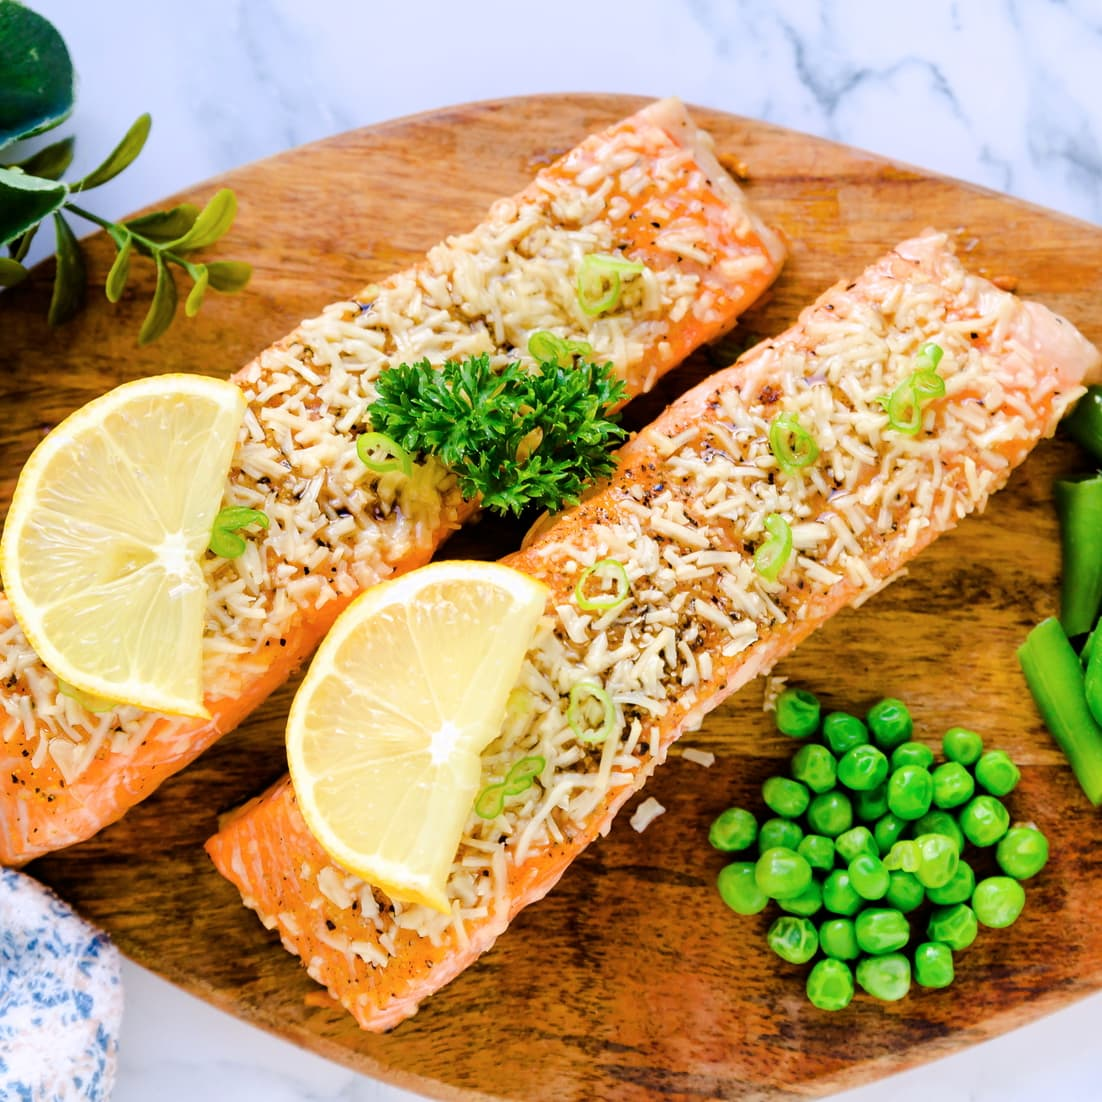 Baked Salmon with Parmesan Crust served with steamed green vegetables